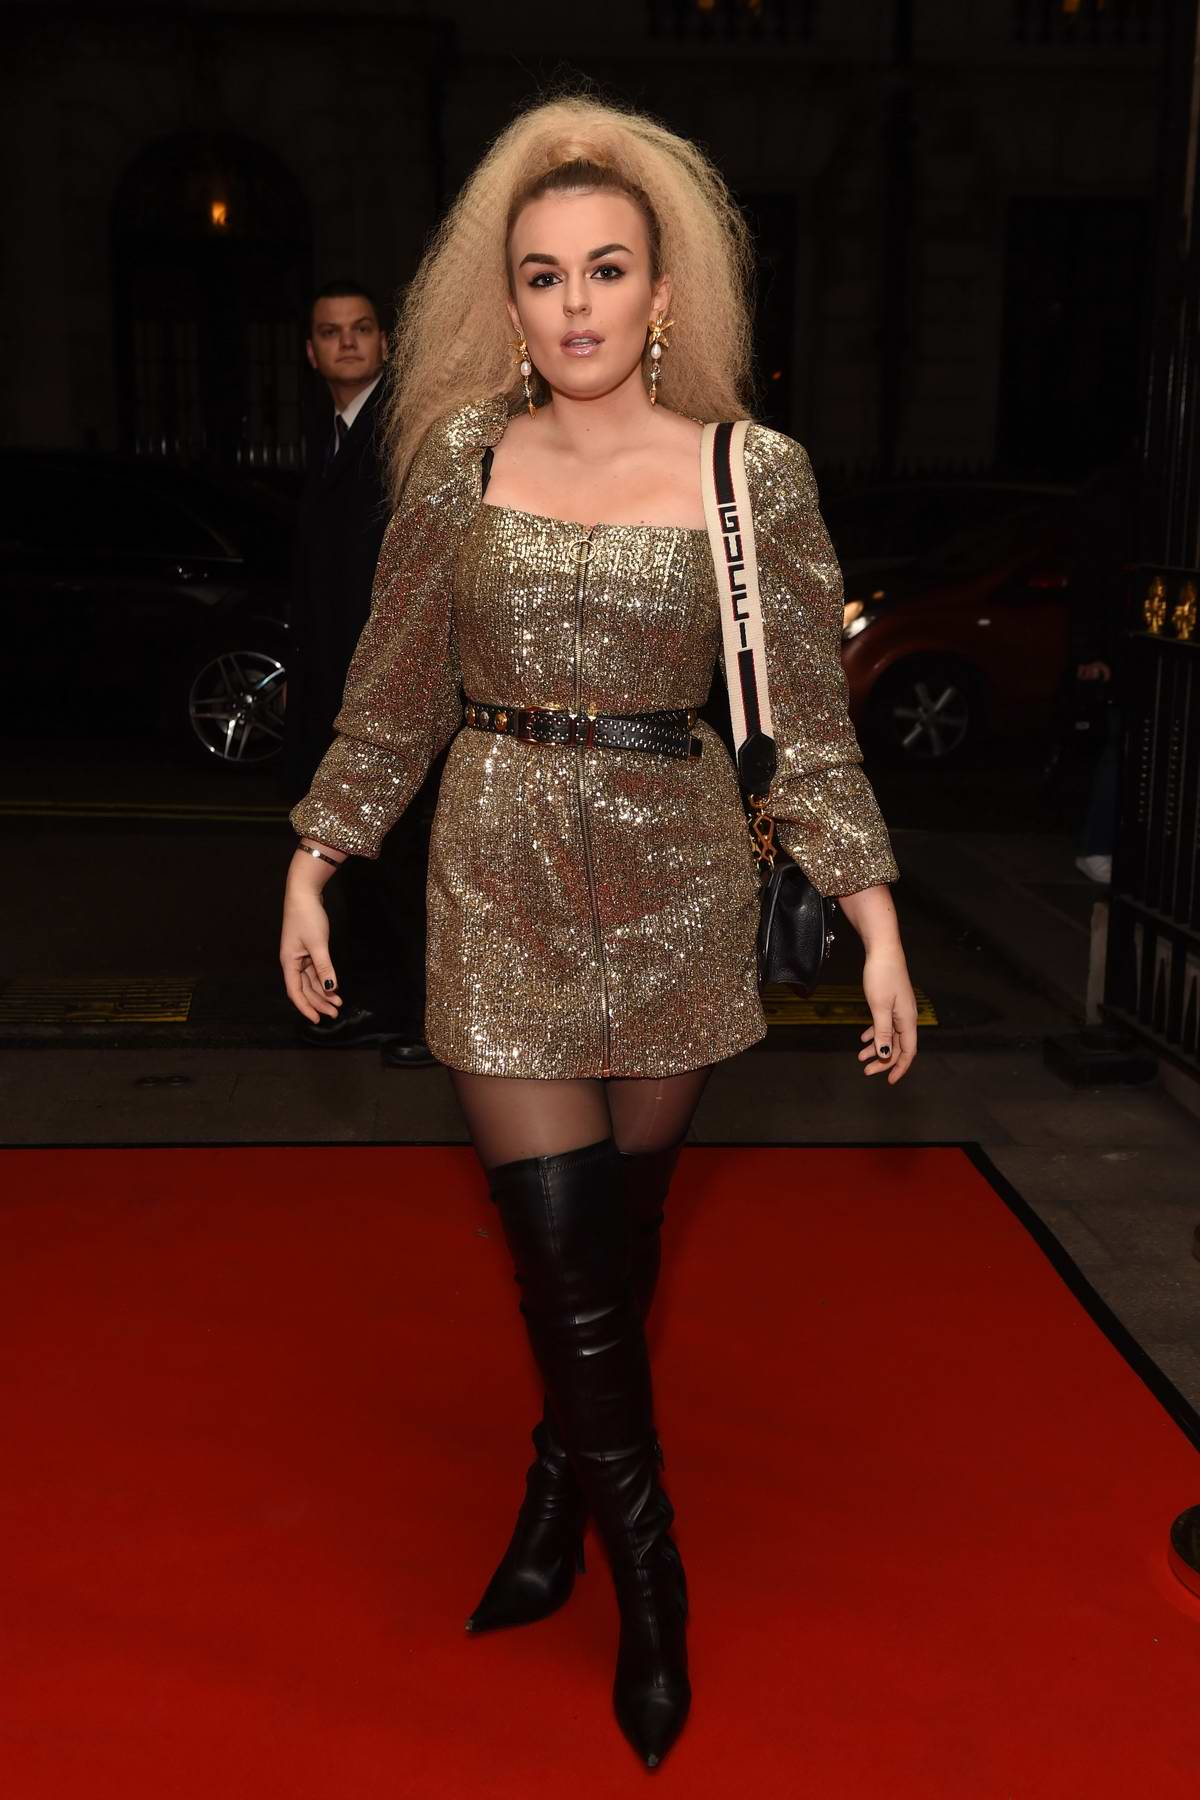 Tallia Storm attends the Float Like a Butterfly Ball Gala in London, UK